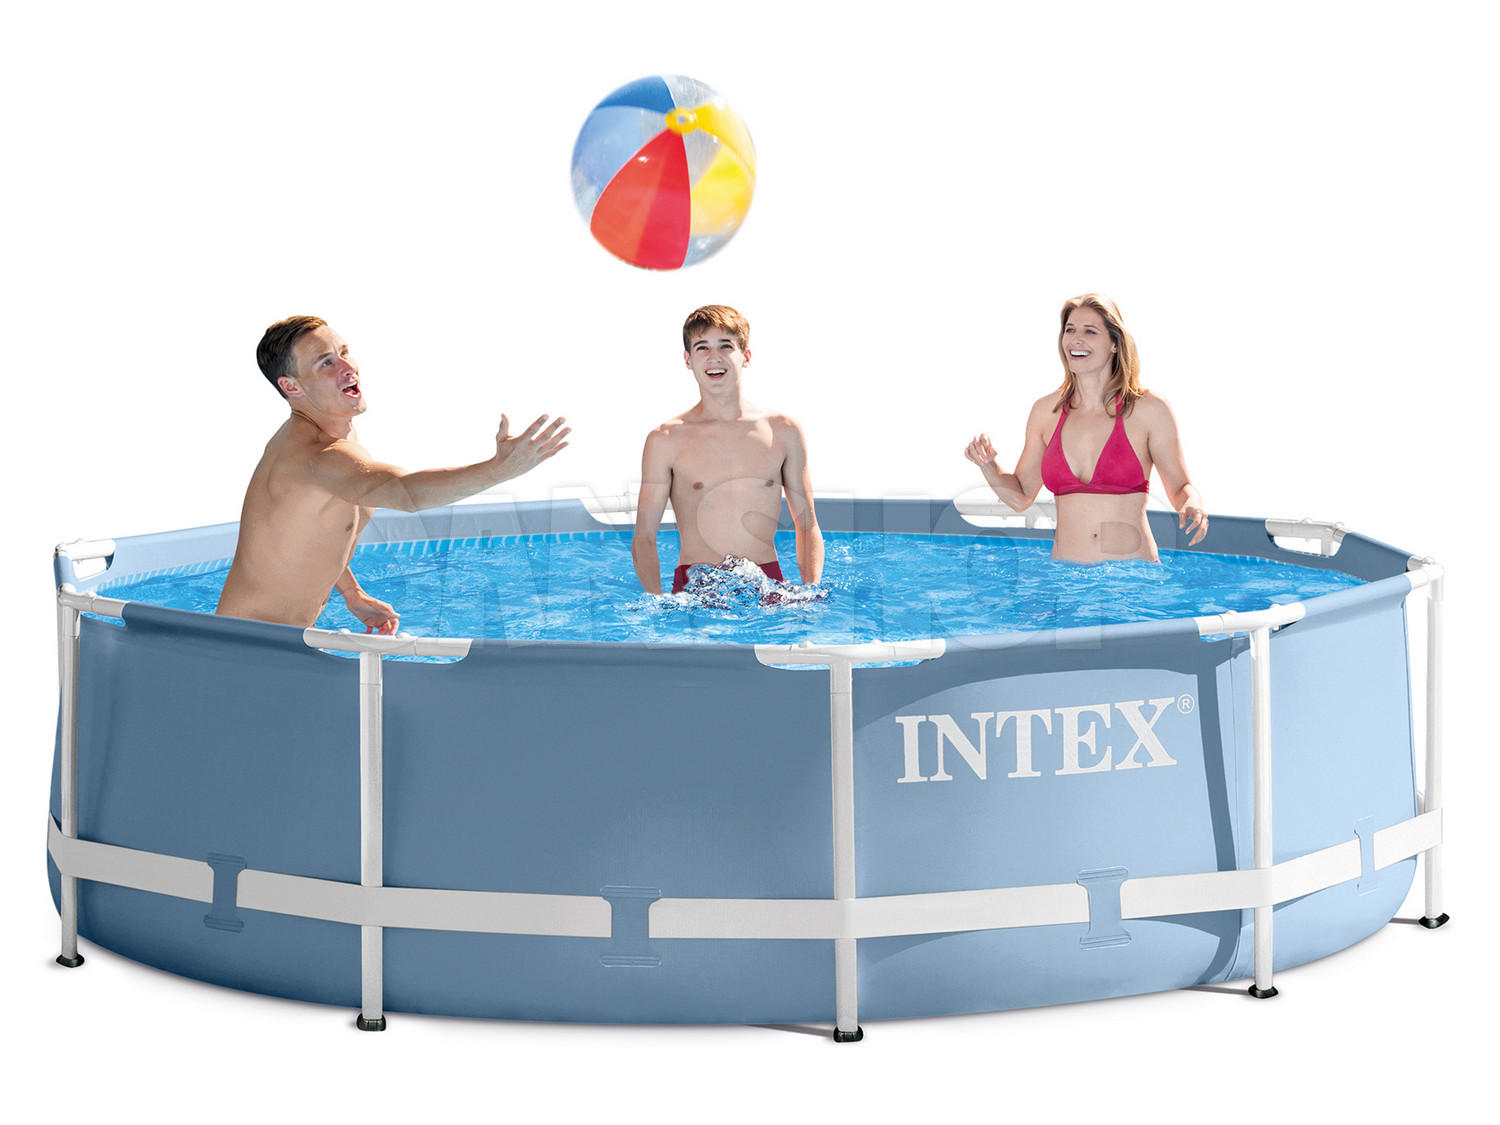 Gartenpool prism 305x76 metal frame pool intex 28700 for Gartenpool metall